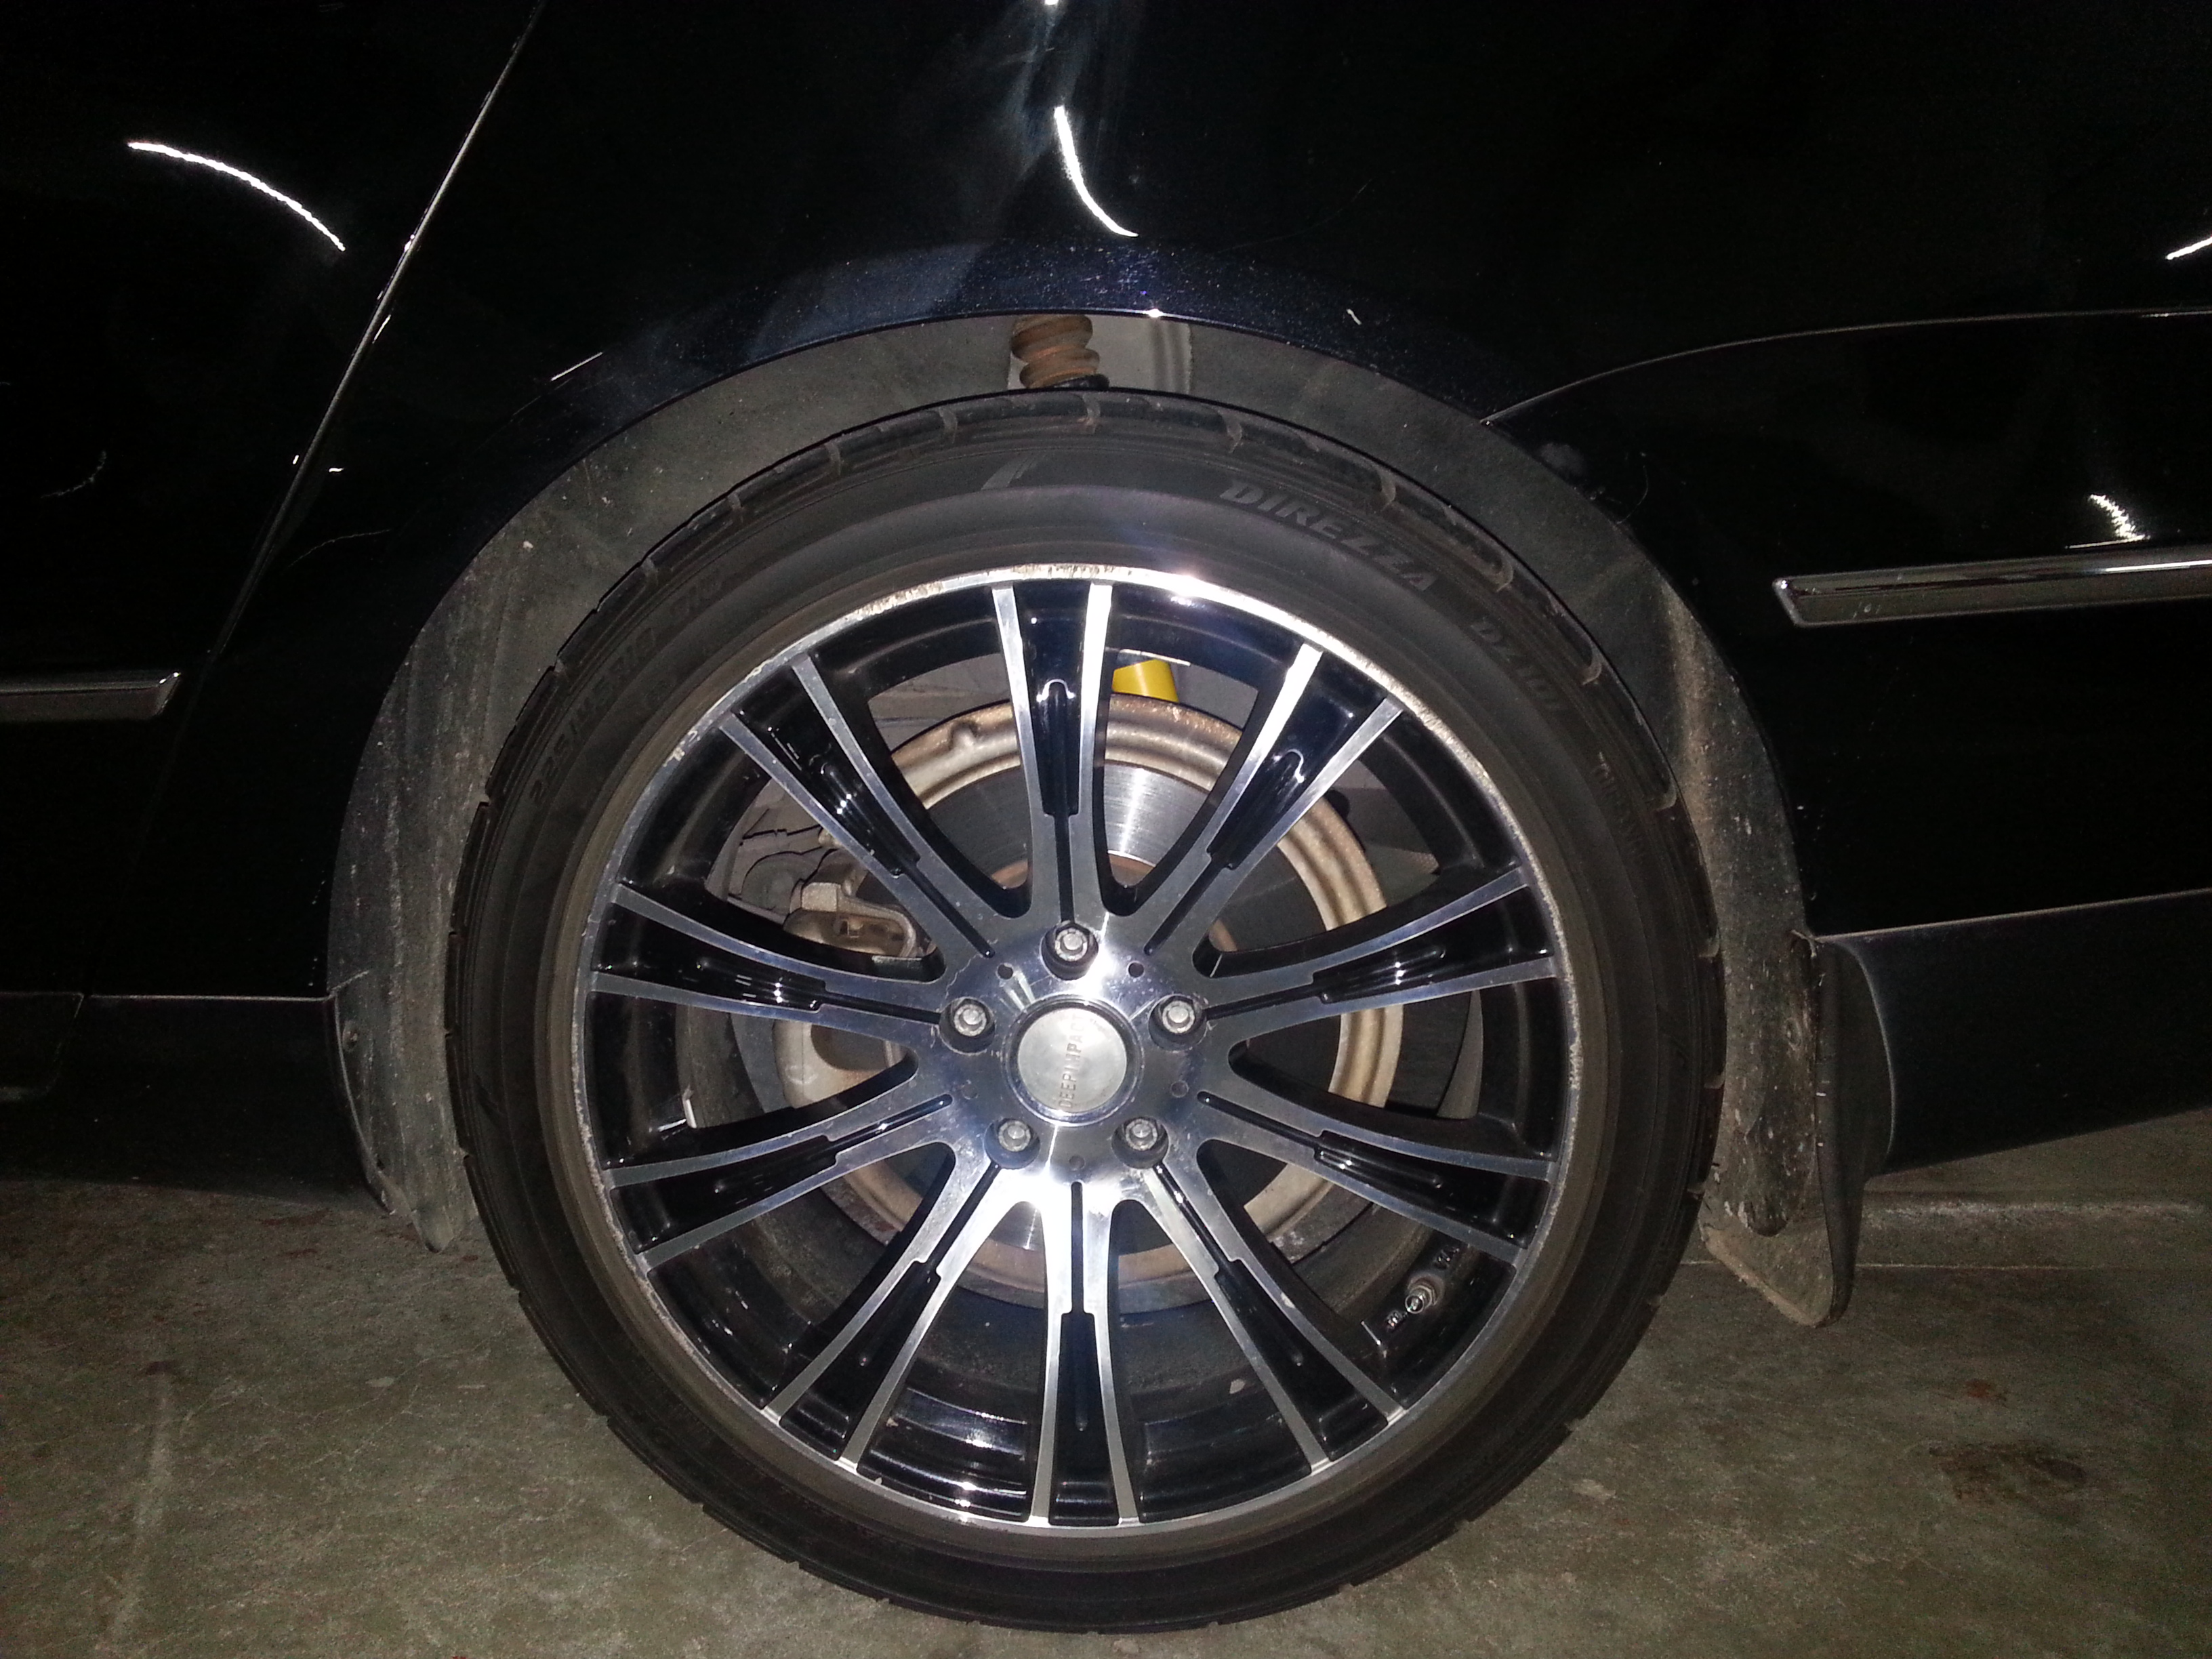 Lowered on Bilstein B12 Pro-kit with 18in Wheel - 19021937